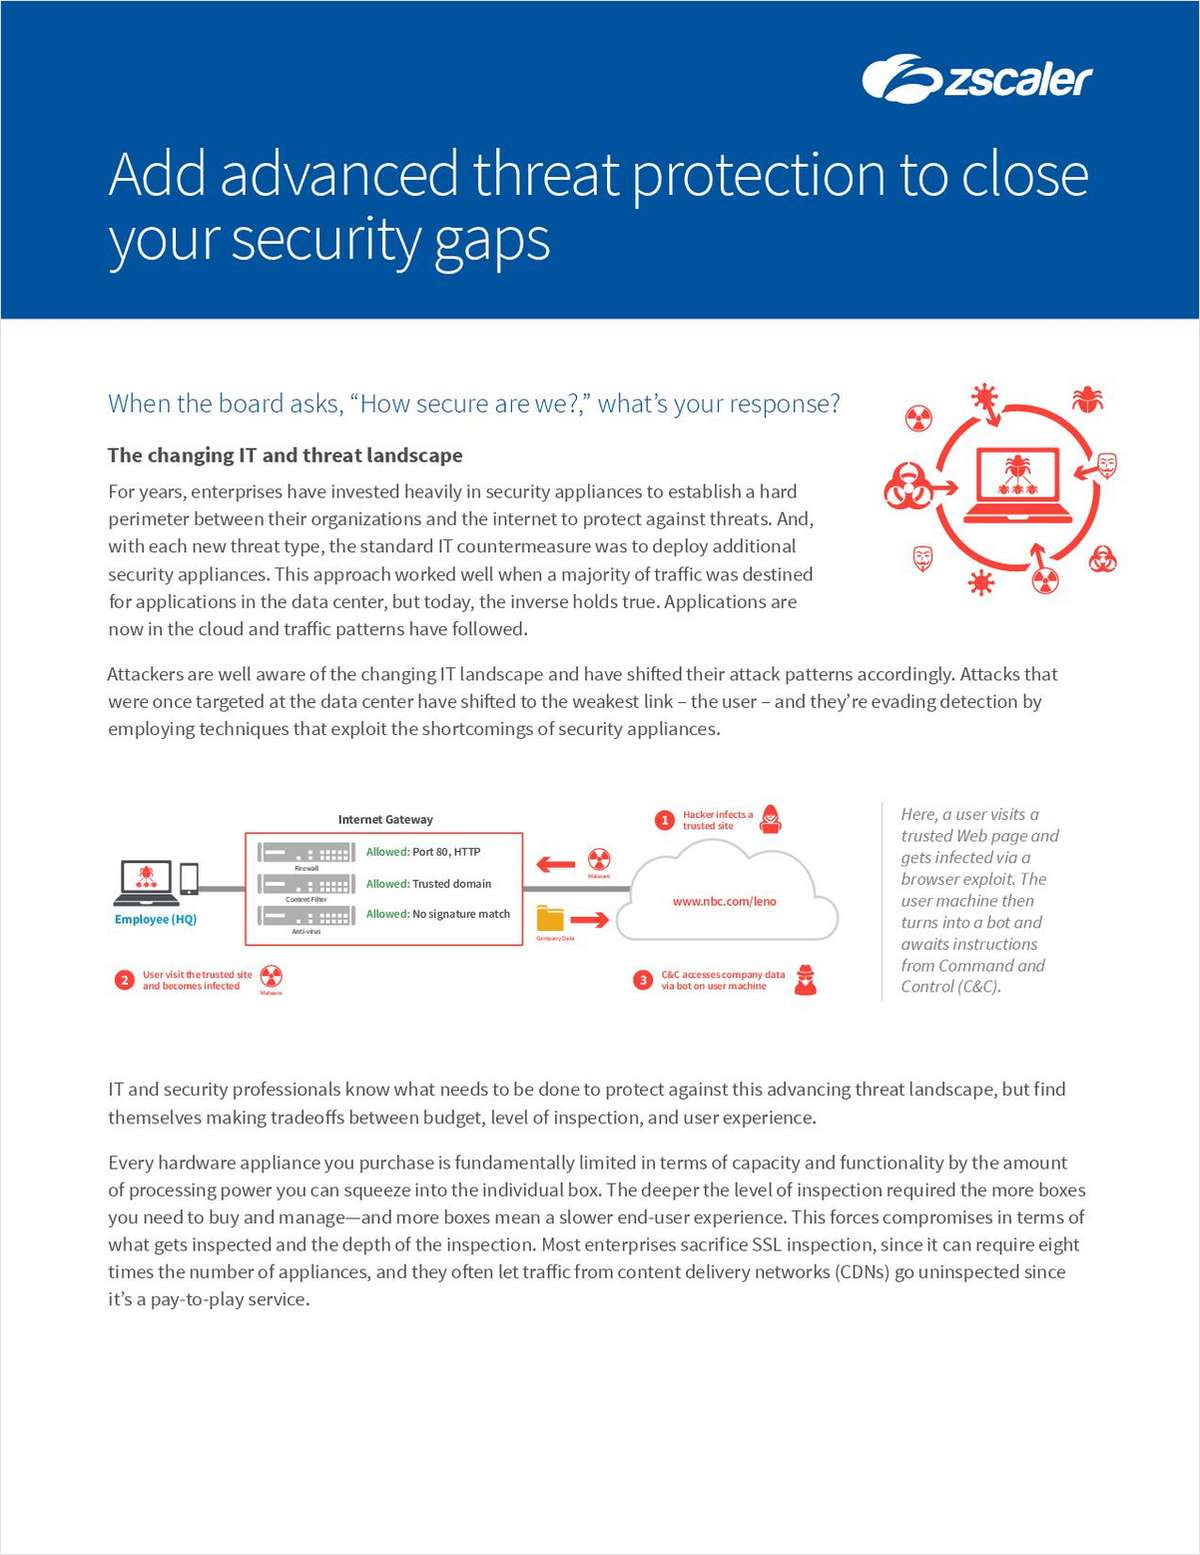 Close Your Security Gaps with Advanced Threat Protection